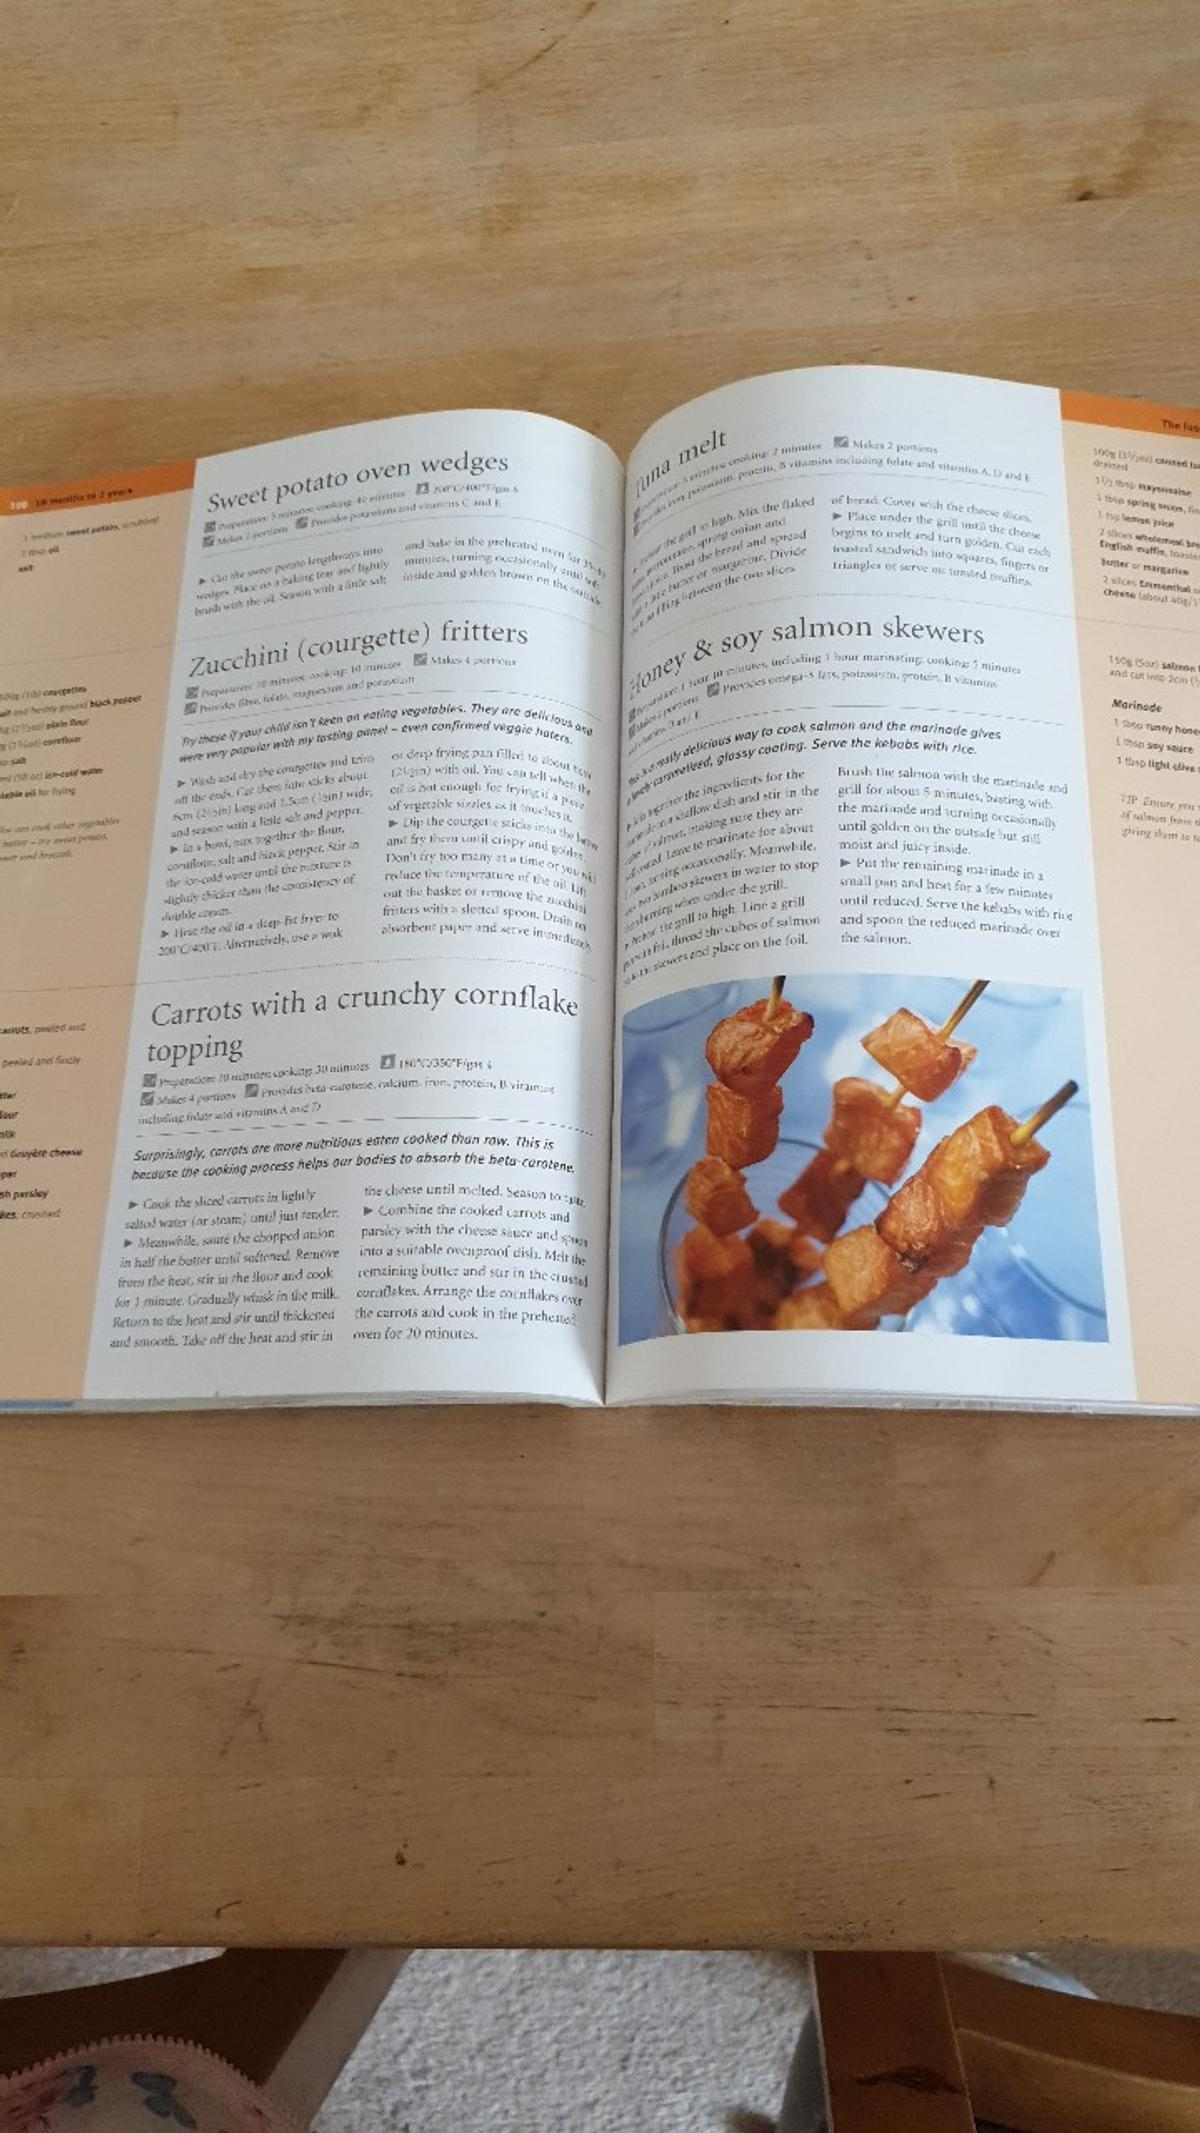 Over 200 recipes including first purees, ginger foods, tempting food for fussy eaters, lunchbox ideas and meals for the whole family to share.